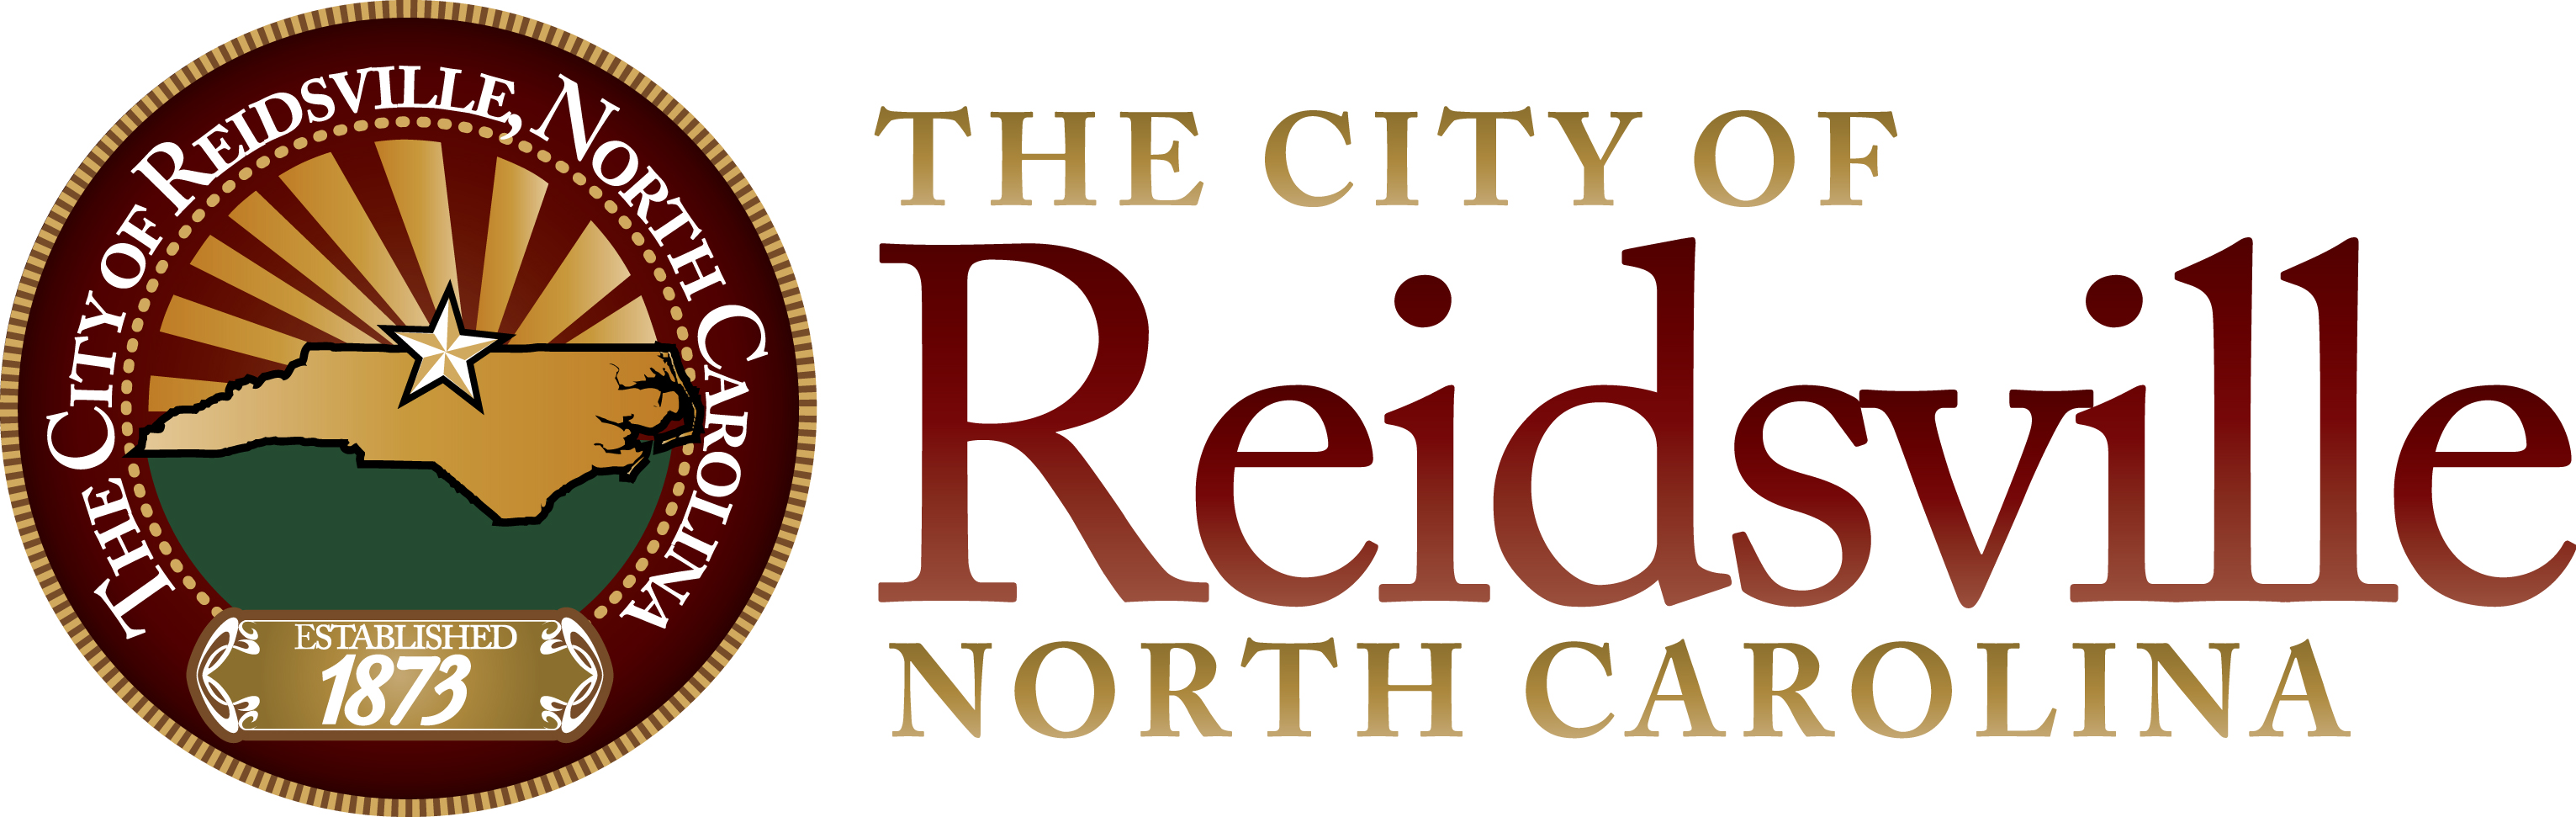 reidsville dating If you're looking for a person to chat with or free dating you've come to the right place reidsville 176 cecelia 62, norristown 107 susan 58, bethlehem 297.